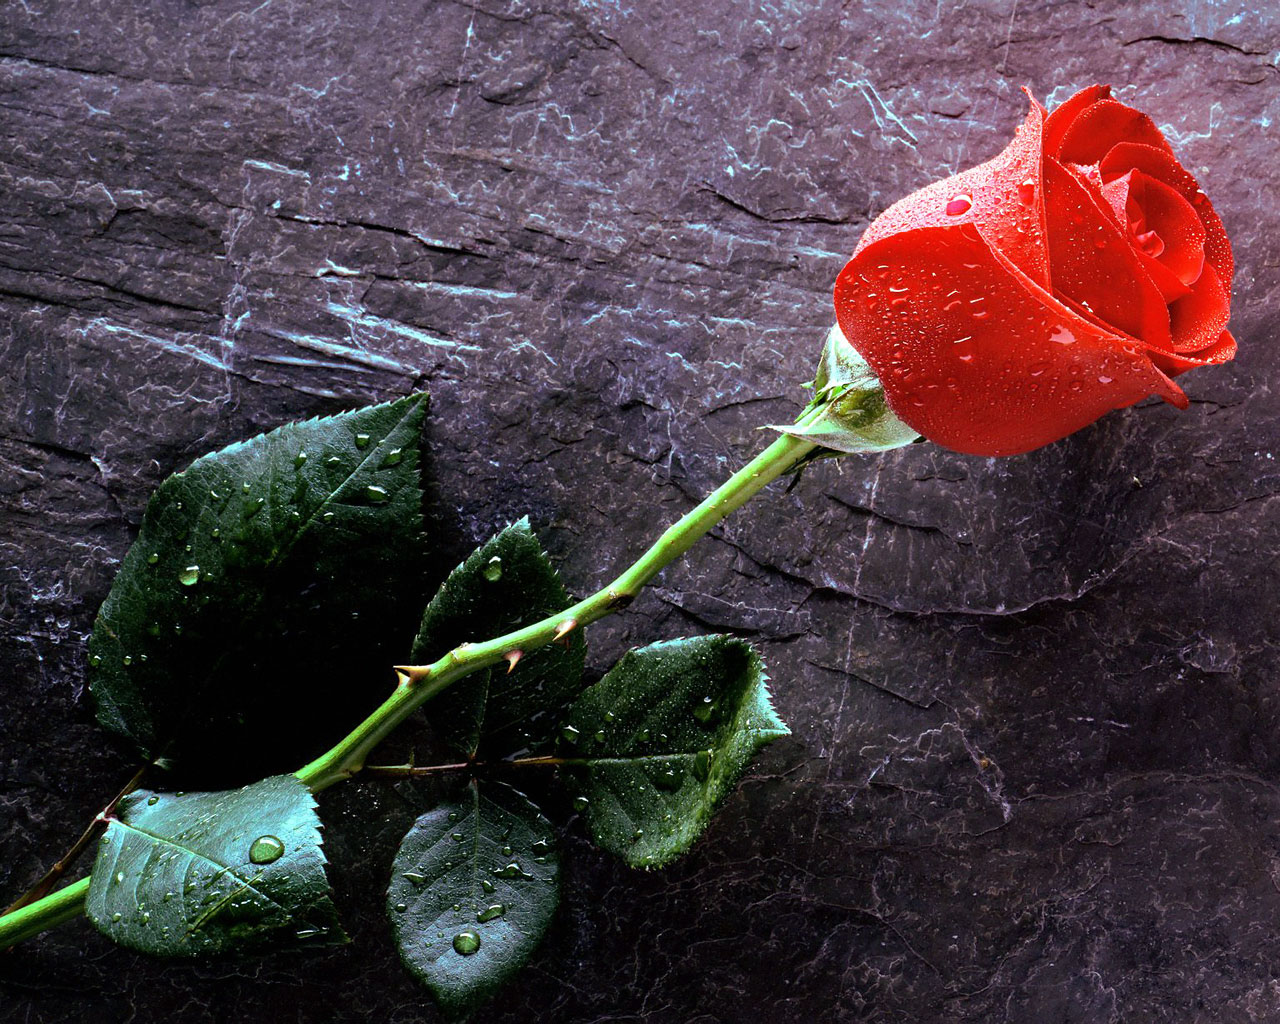 a red rose